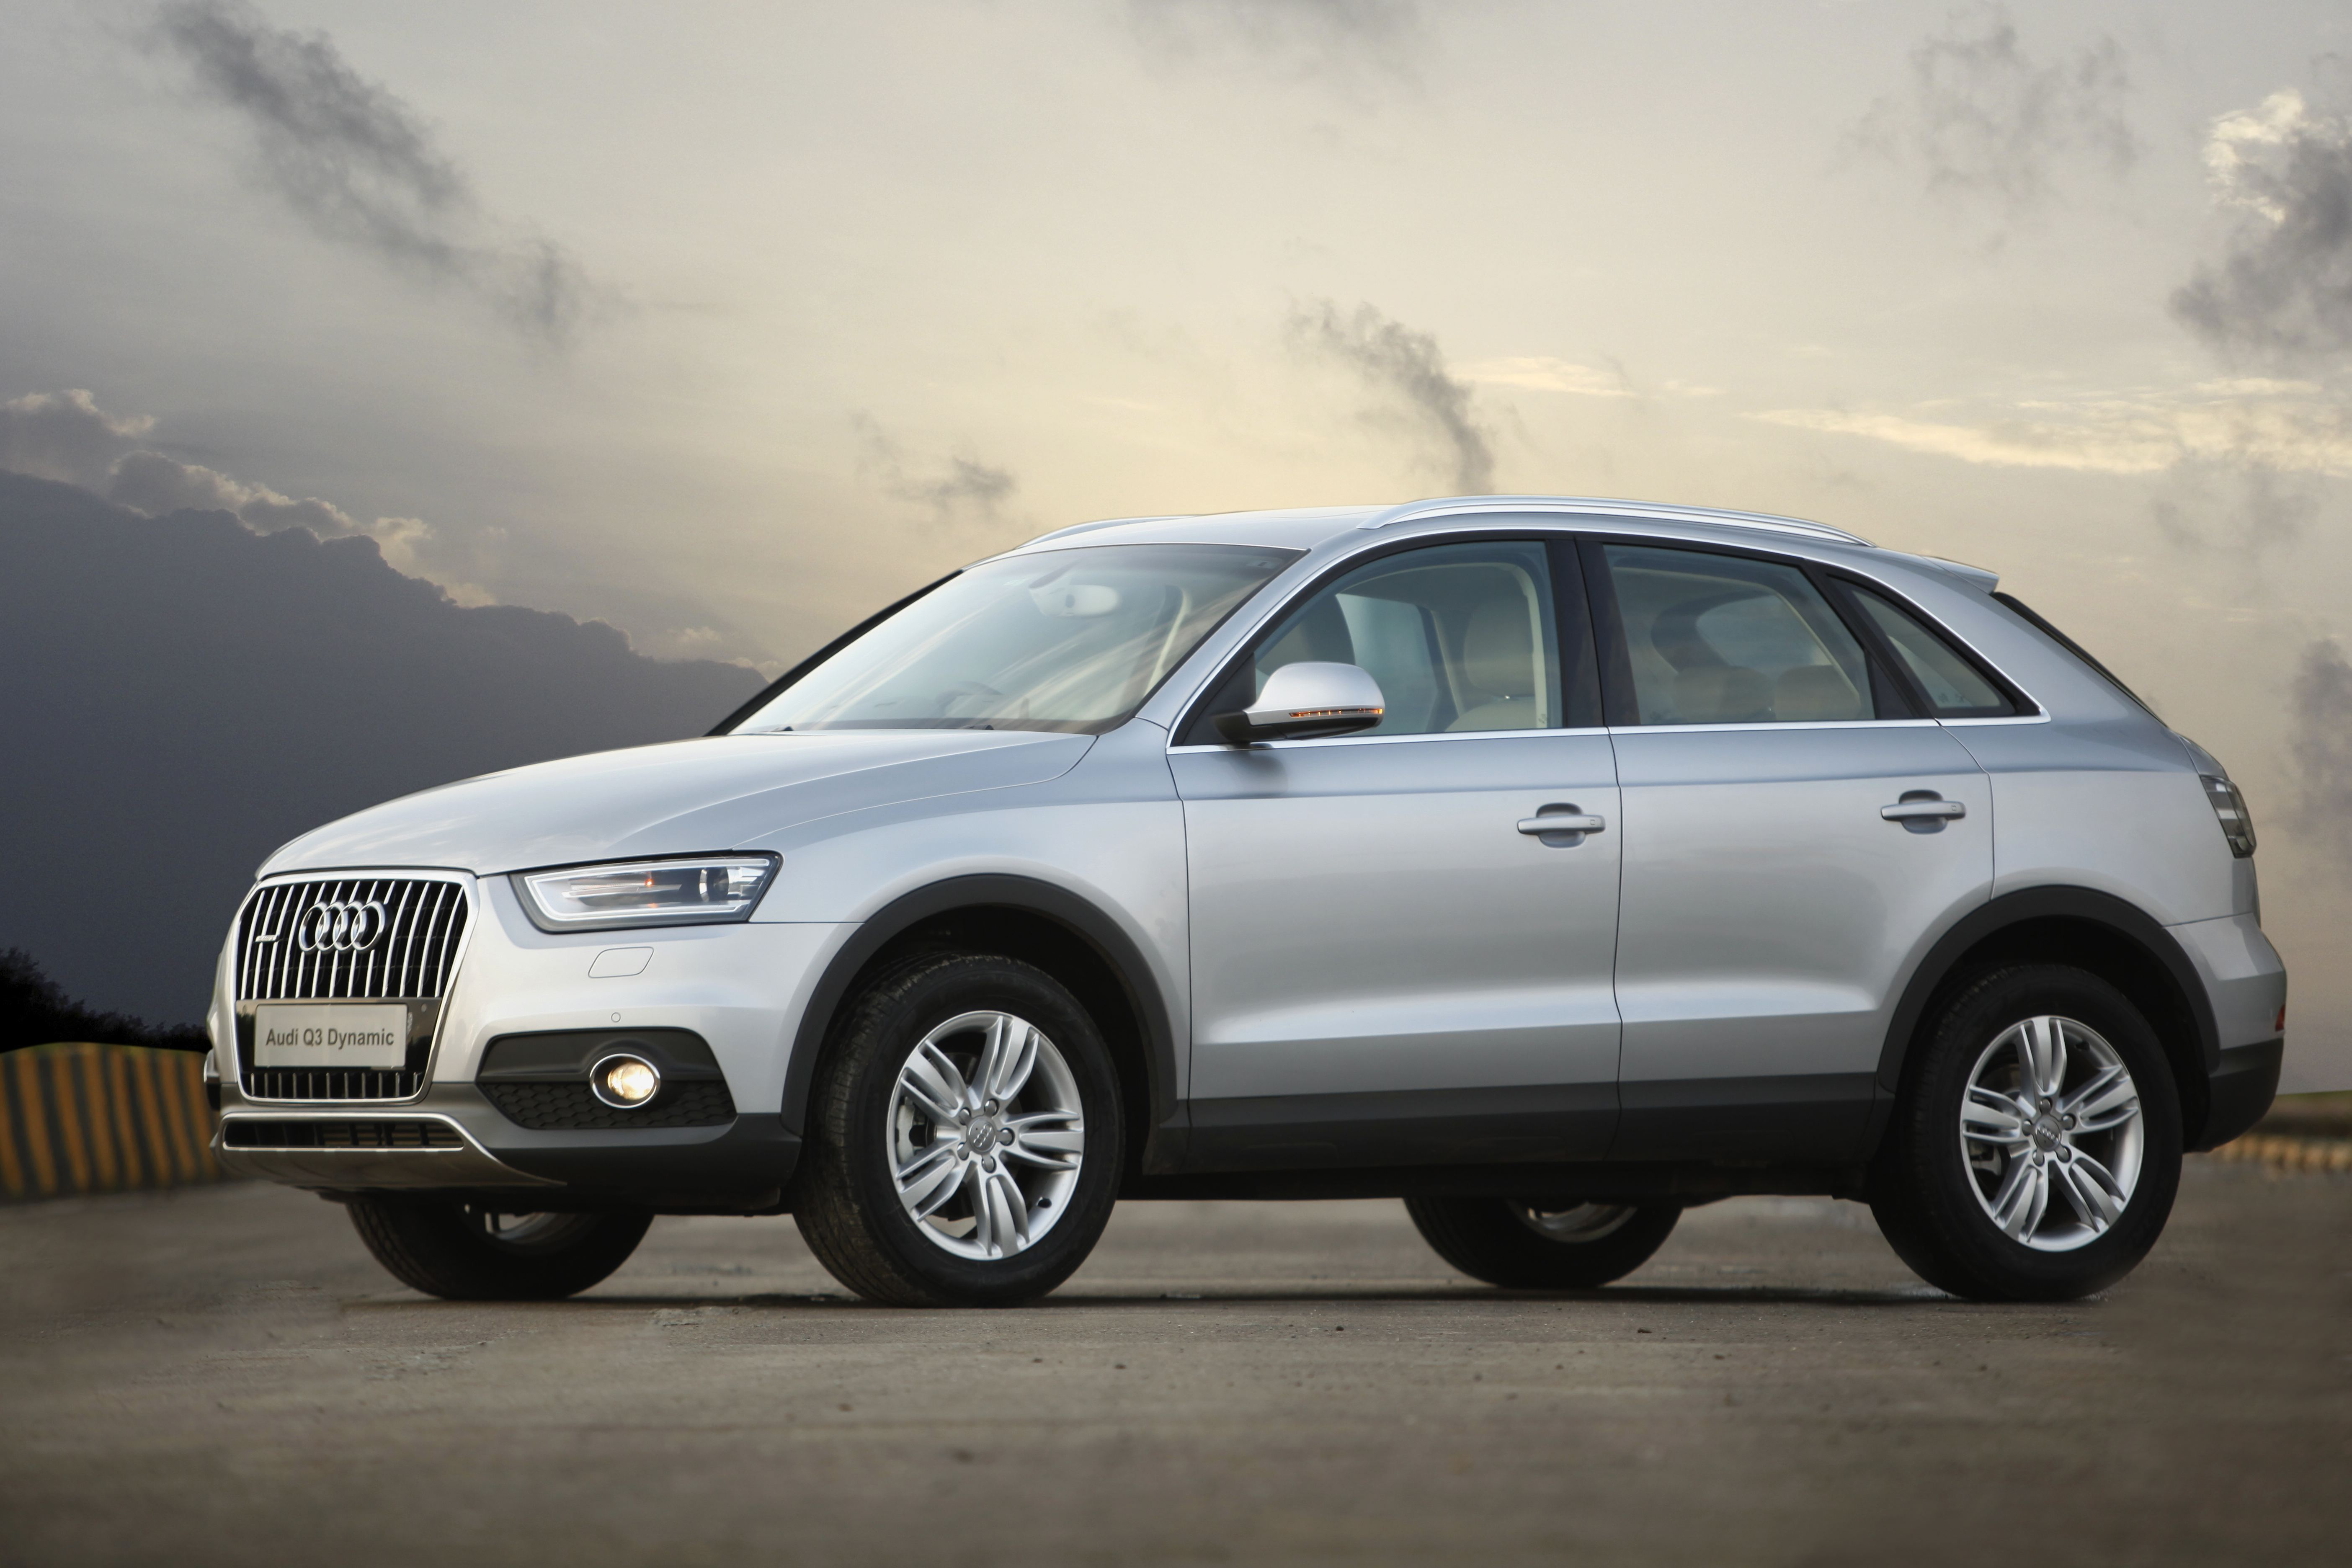 audi q3 expands its range introduces audi q3 dynamic. Black Bedroom Furniture Sets. Home Design Ideas